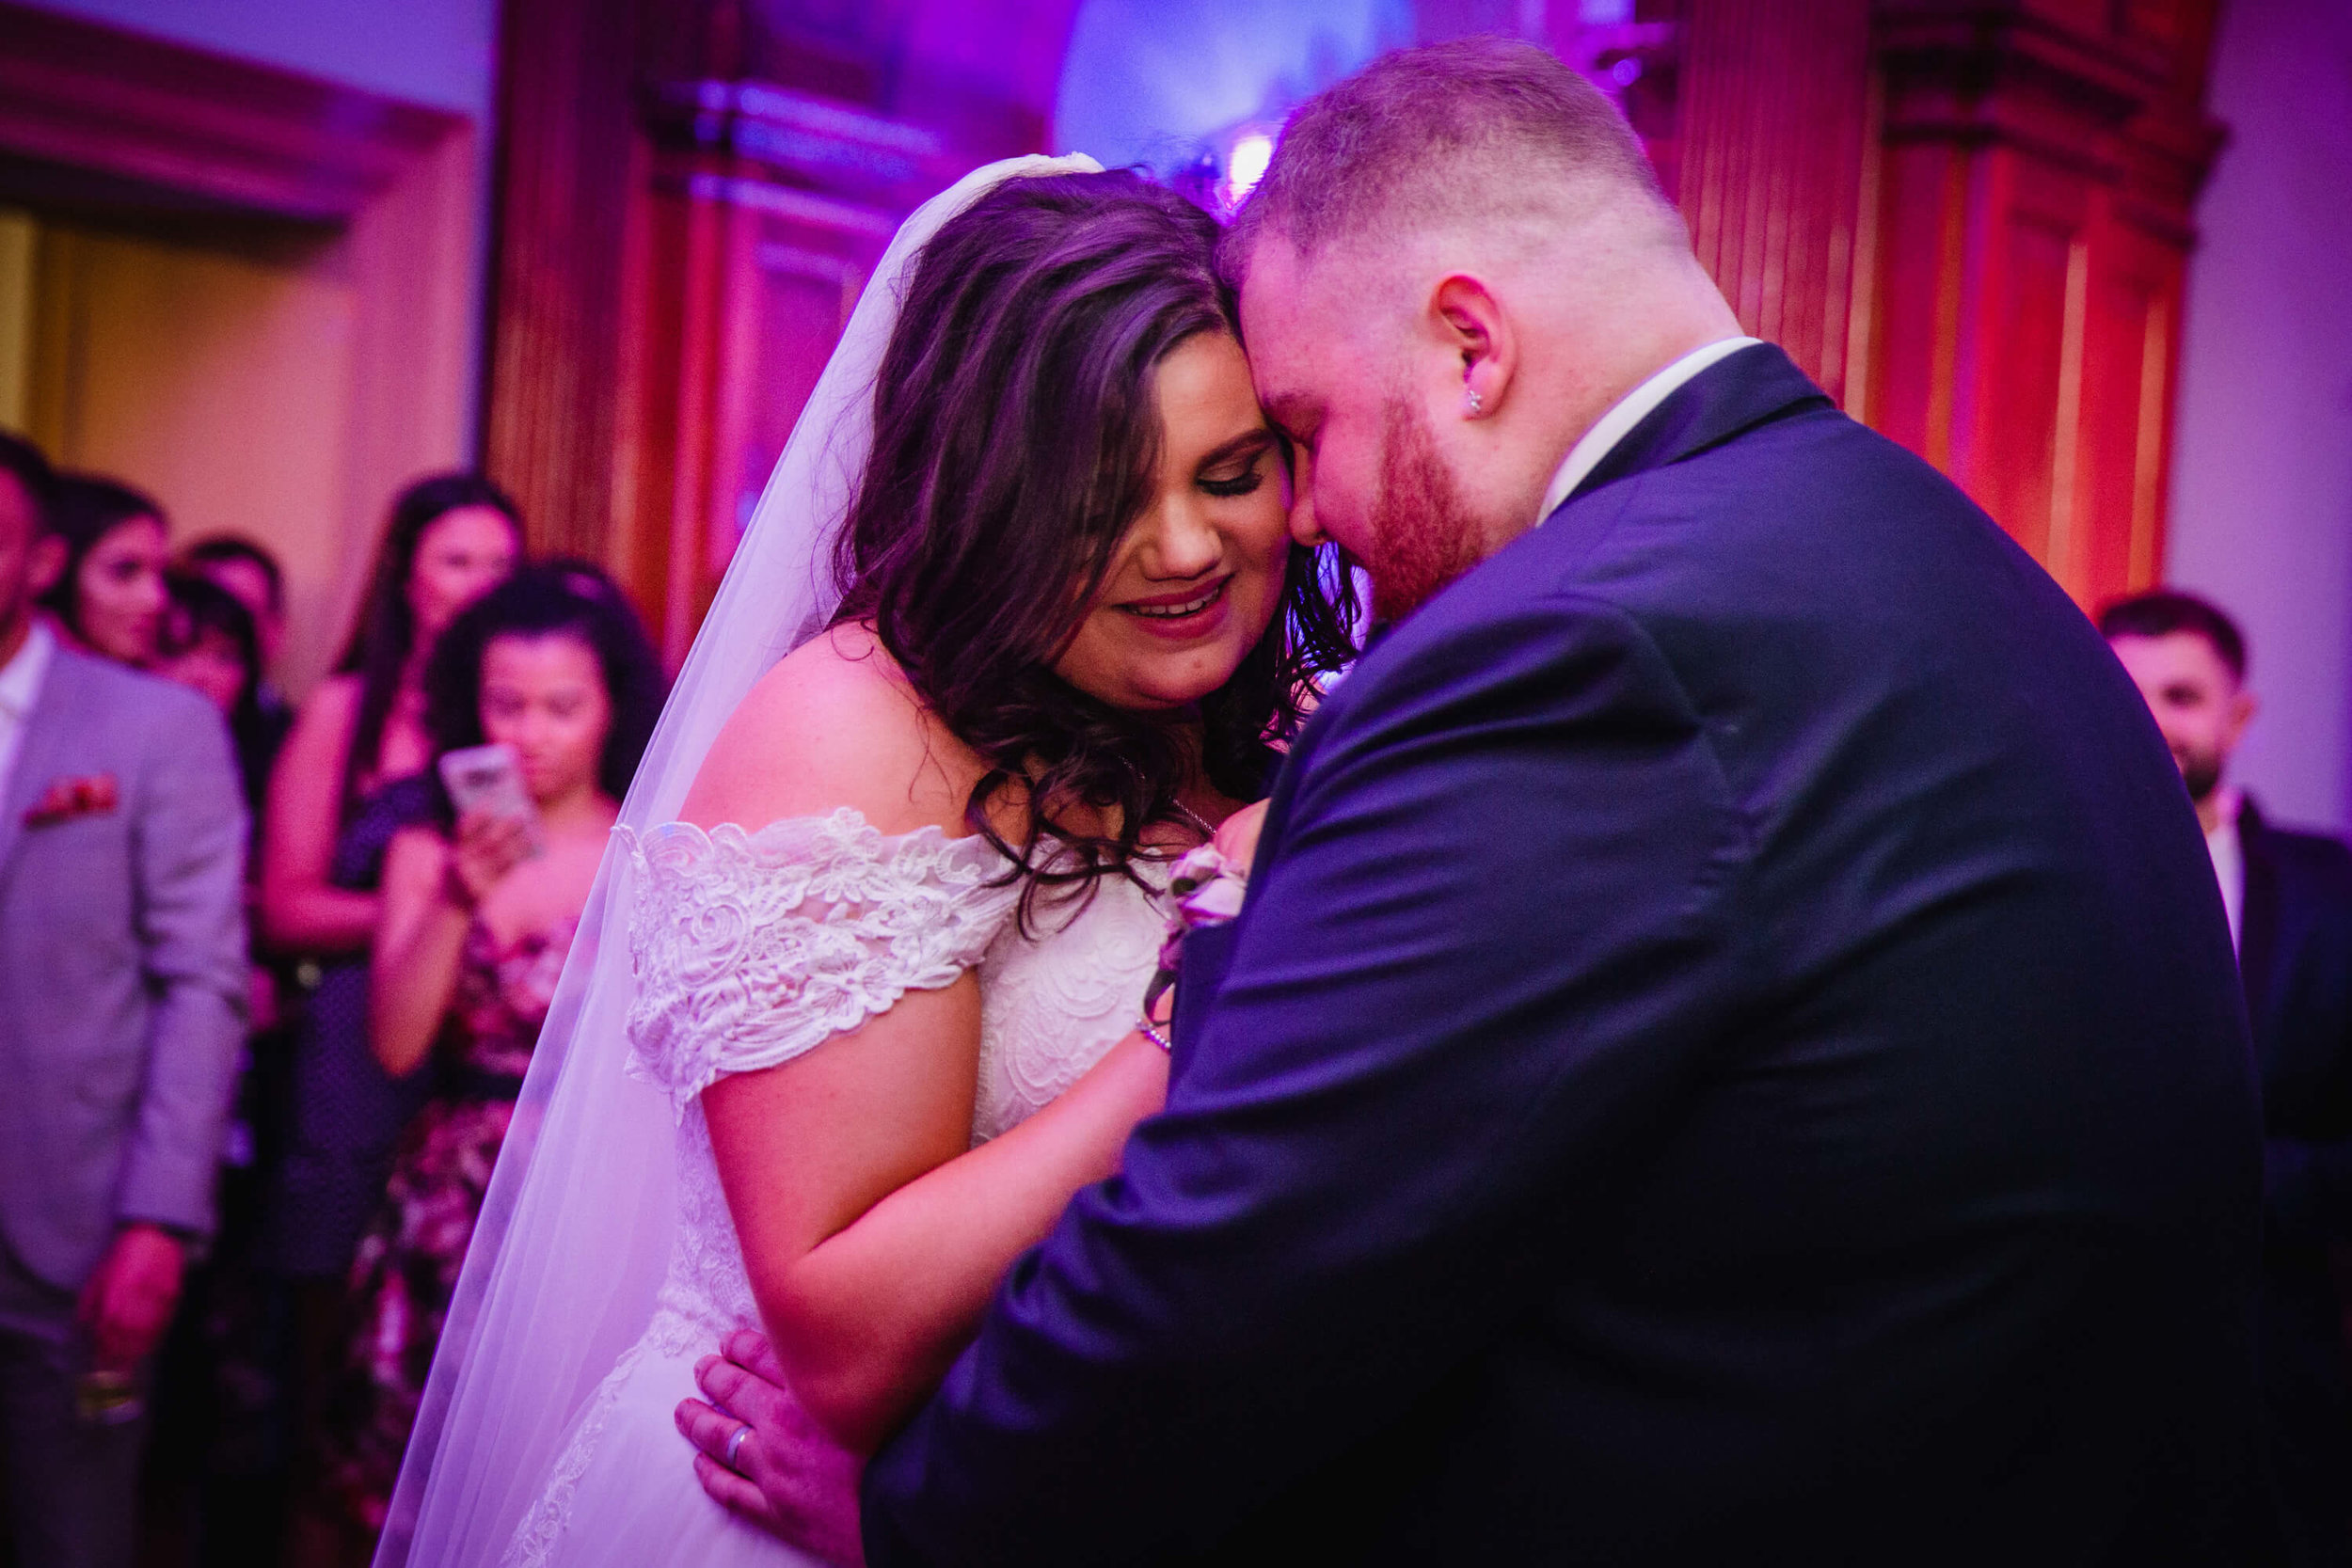 bride and groom sharing intimate moment during first dance